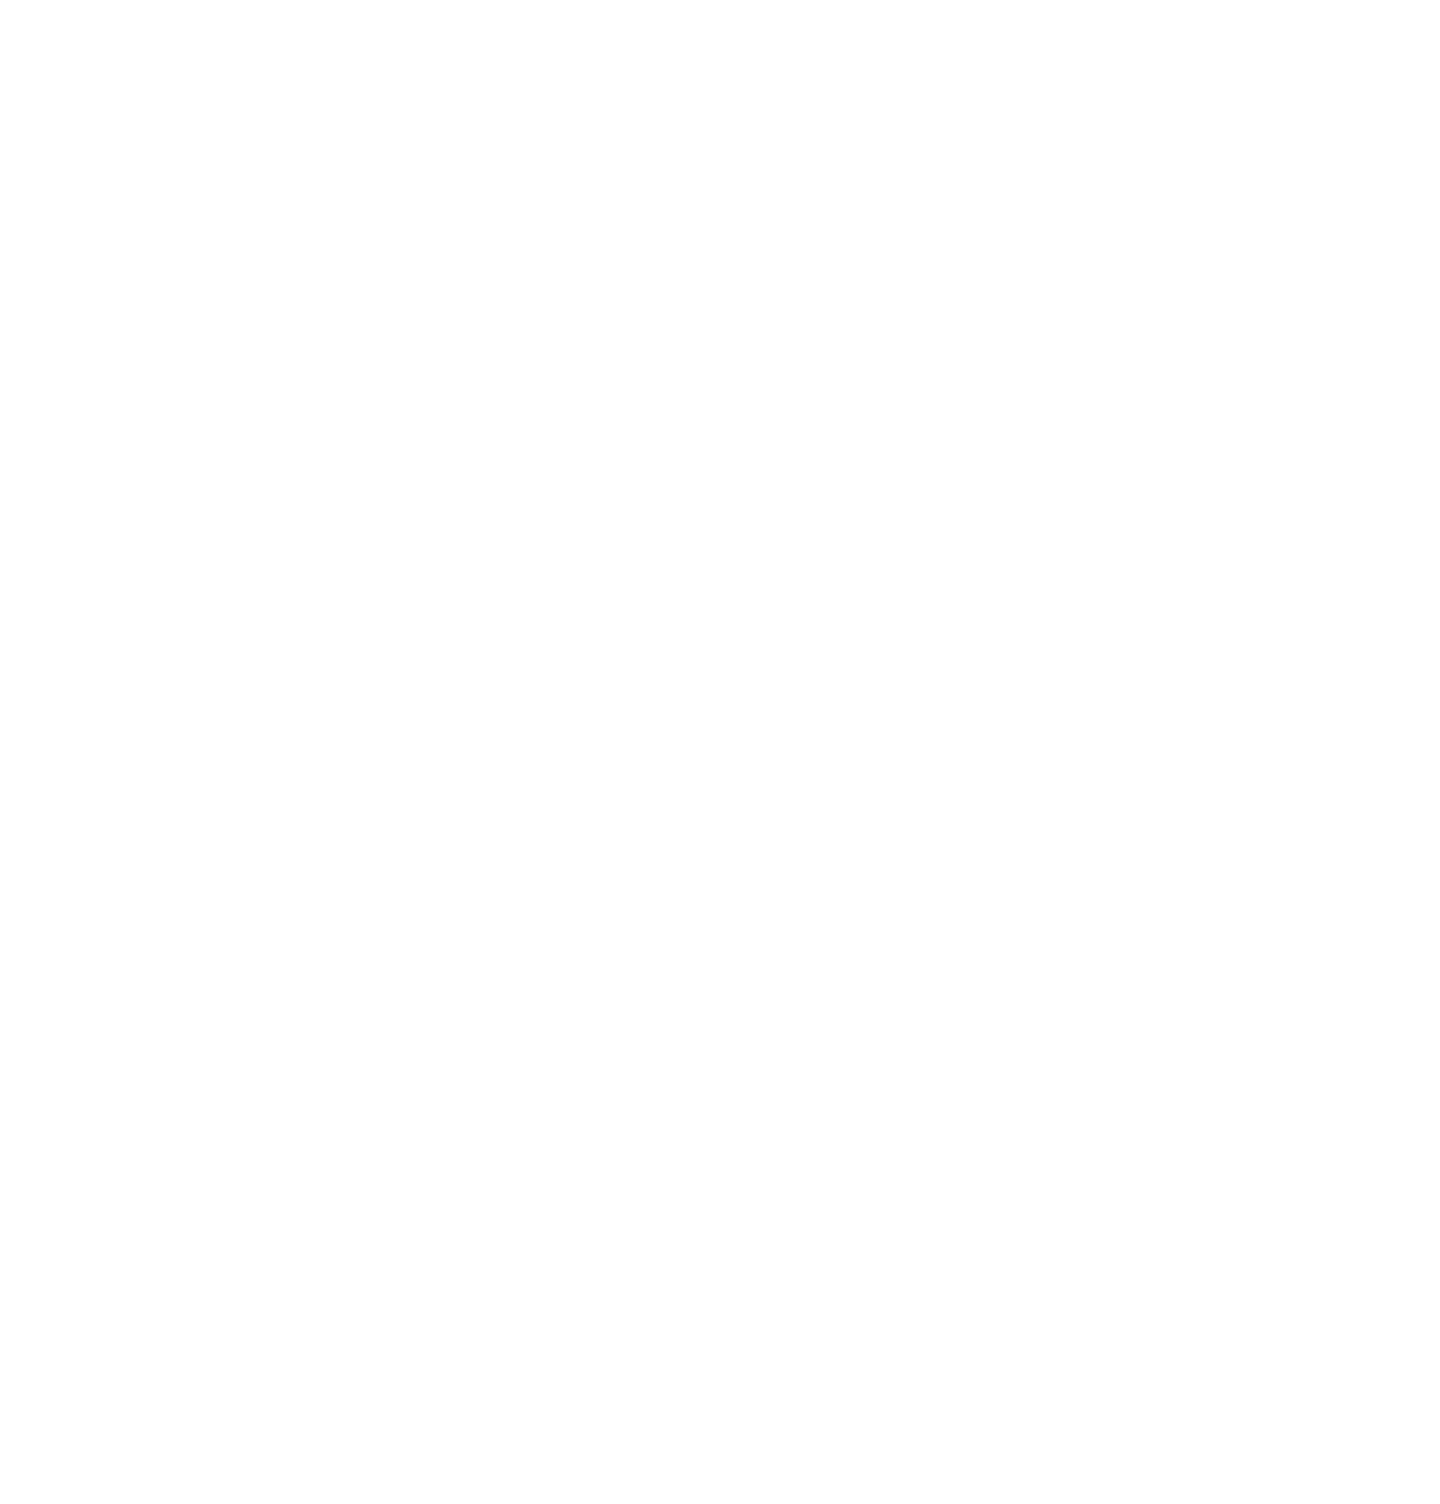 Illustration of a non-designer's face